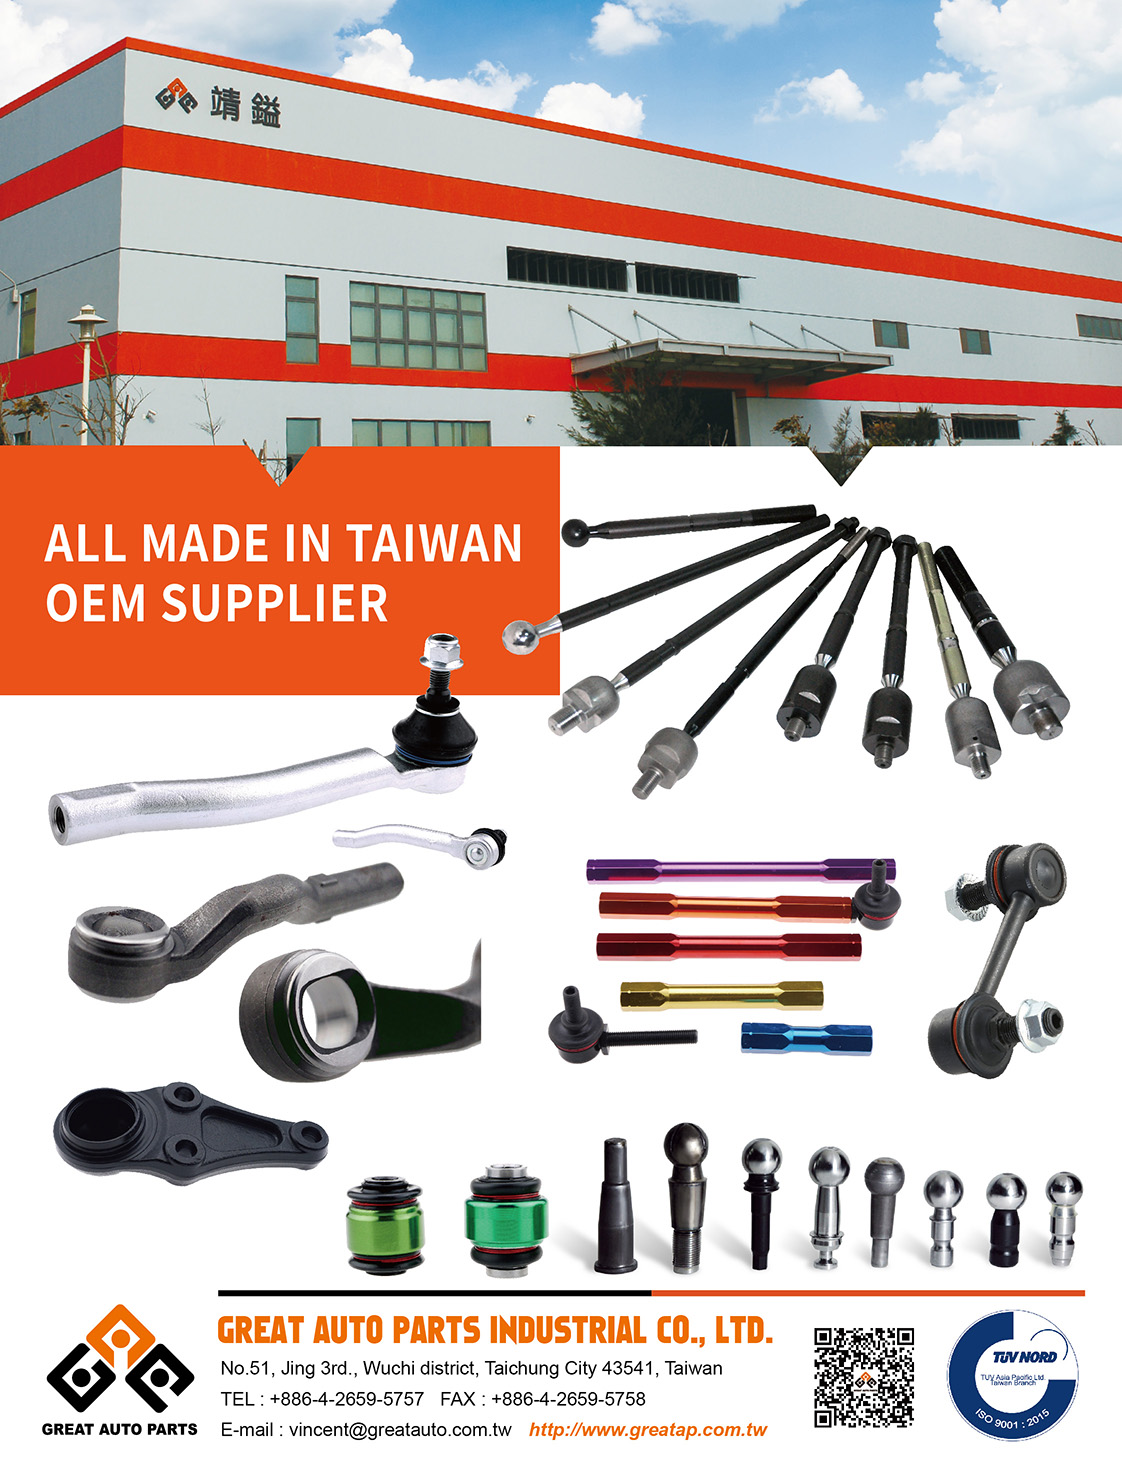 GREAT AUTO PARTS INDUSTRIAL CO., LTD.